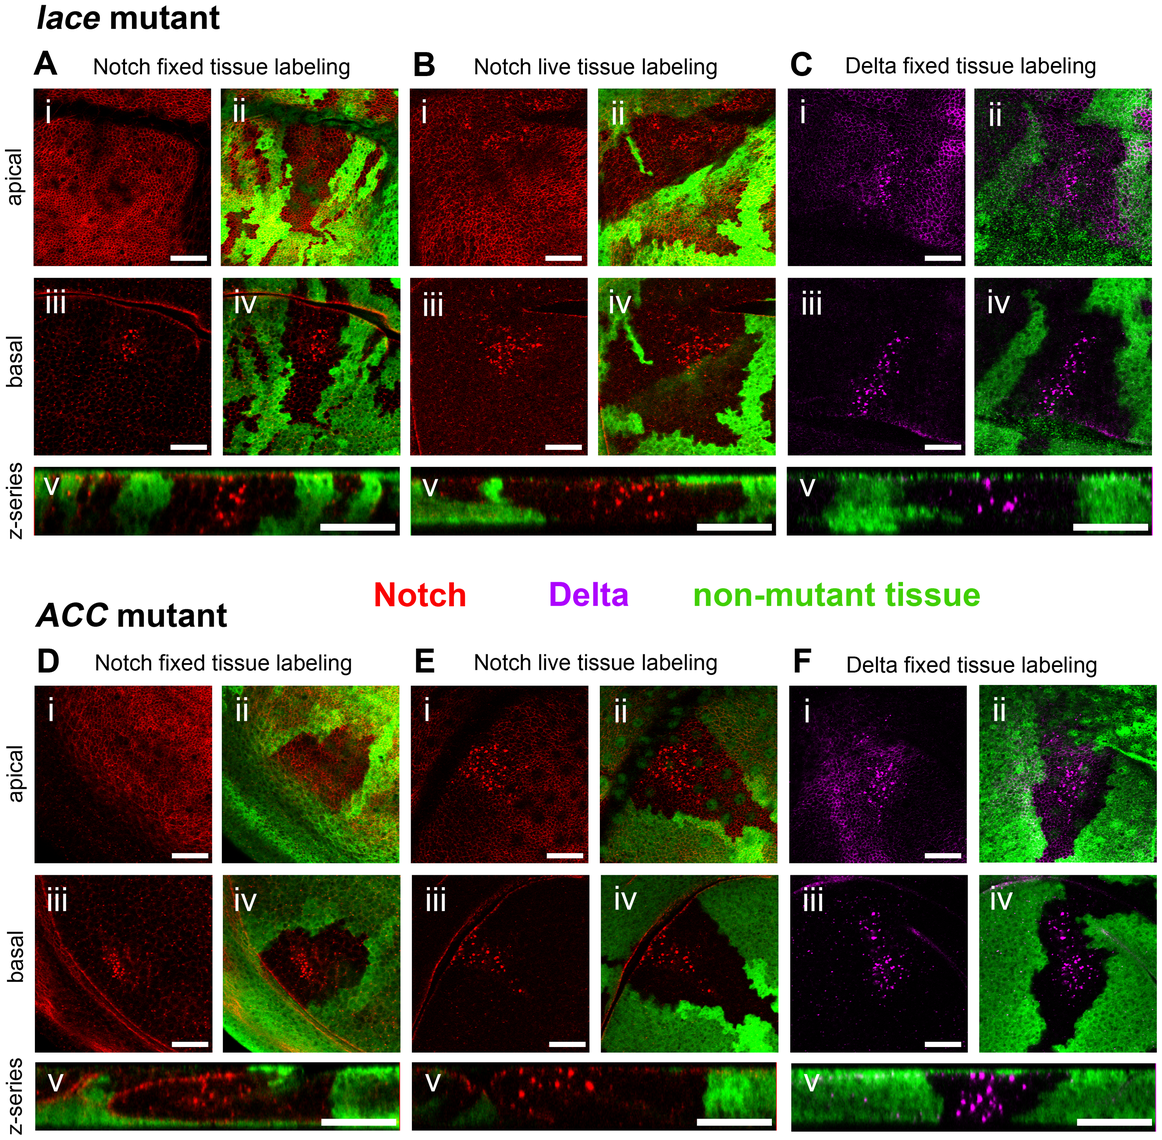 Notch and Delta accumulate abnormally in <i>lace</i> and <i>ACC</i> mutant tissues.